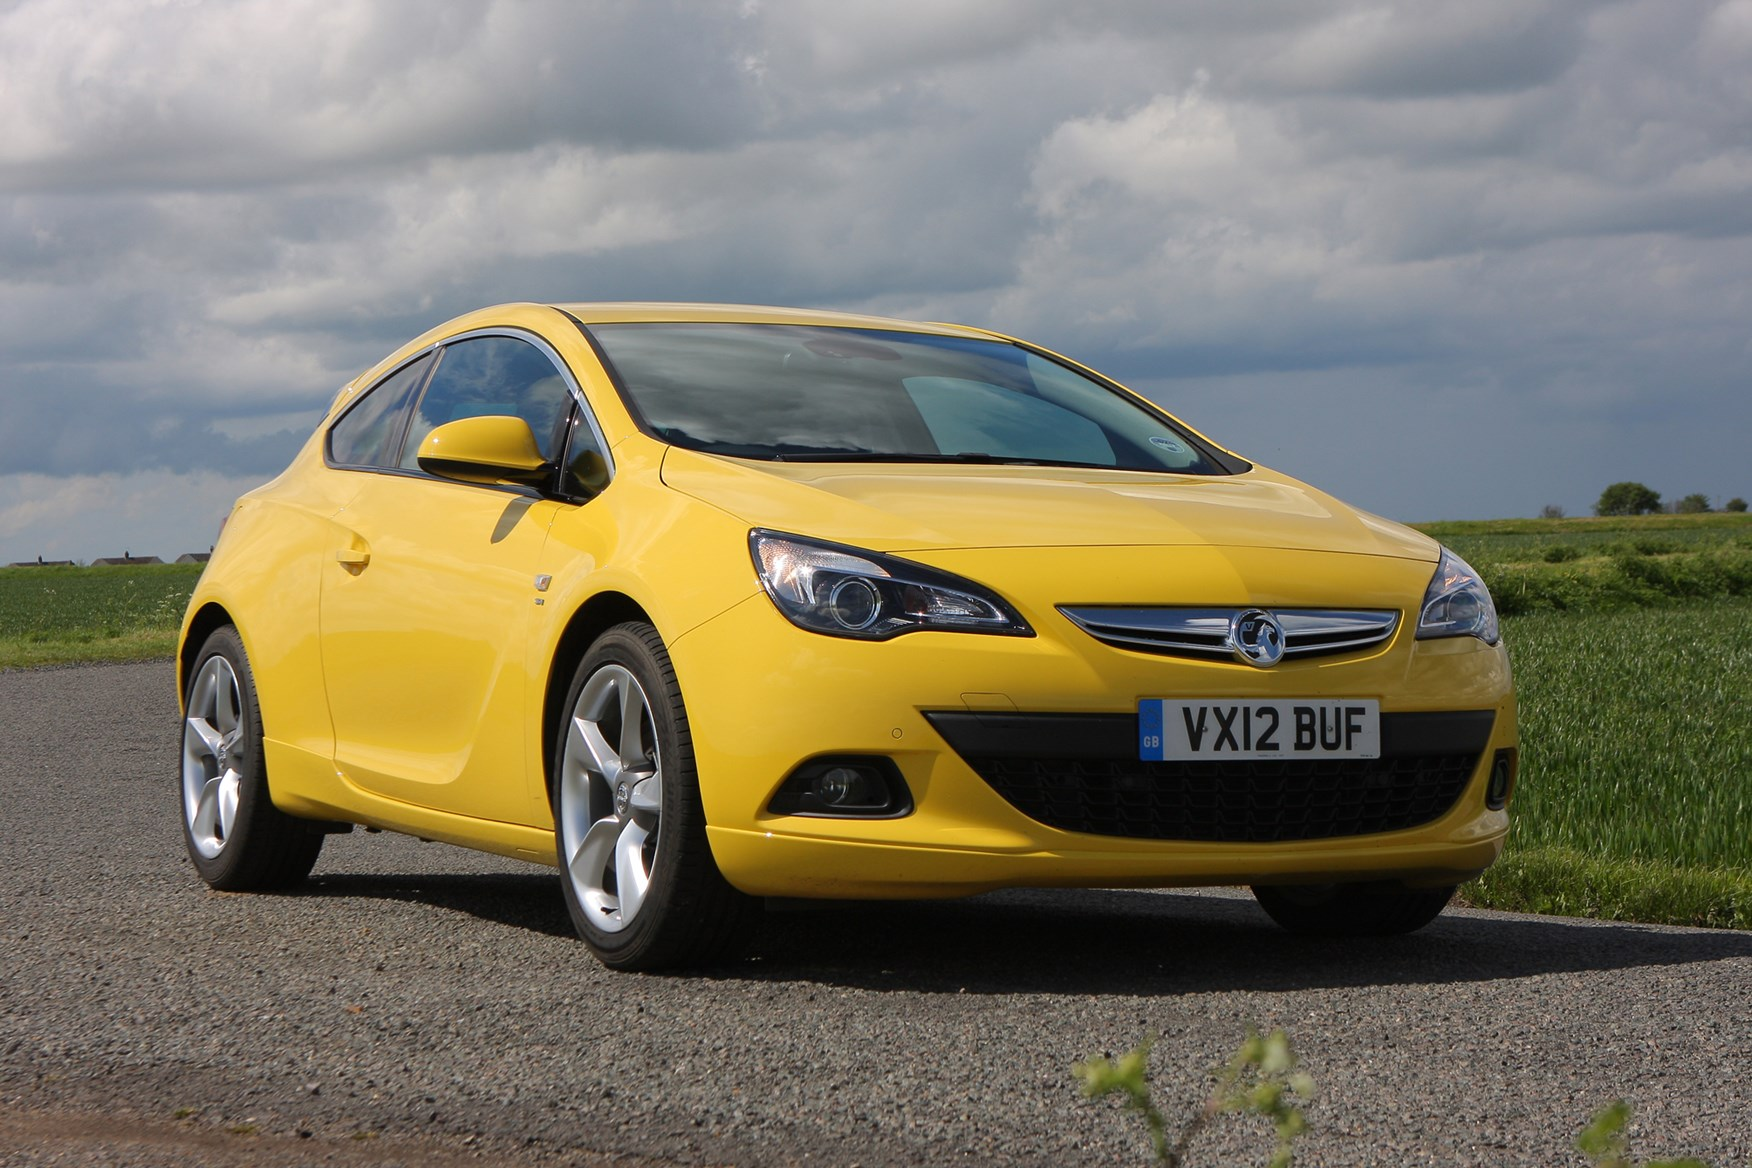 Used Vauxhall Astra GTC Coupe (2011 - 2018) Review | Parkers